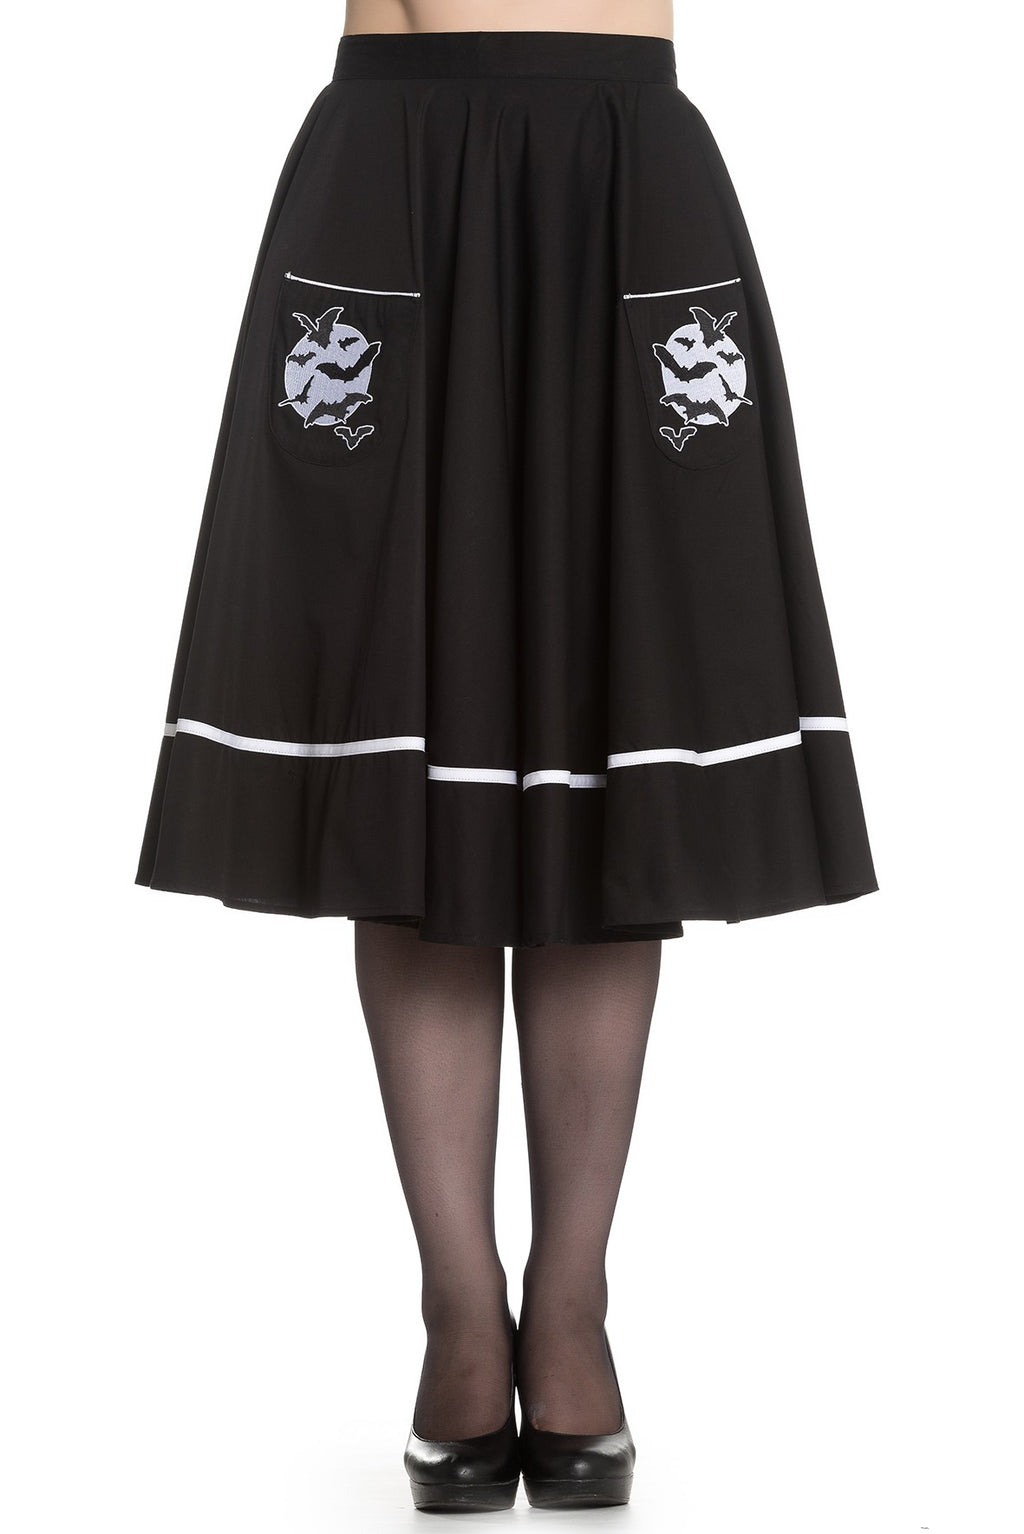 CLOSE-OUT Hell Bunny Full Moon Skirt